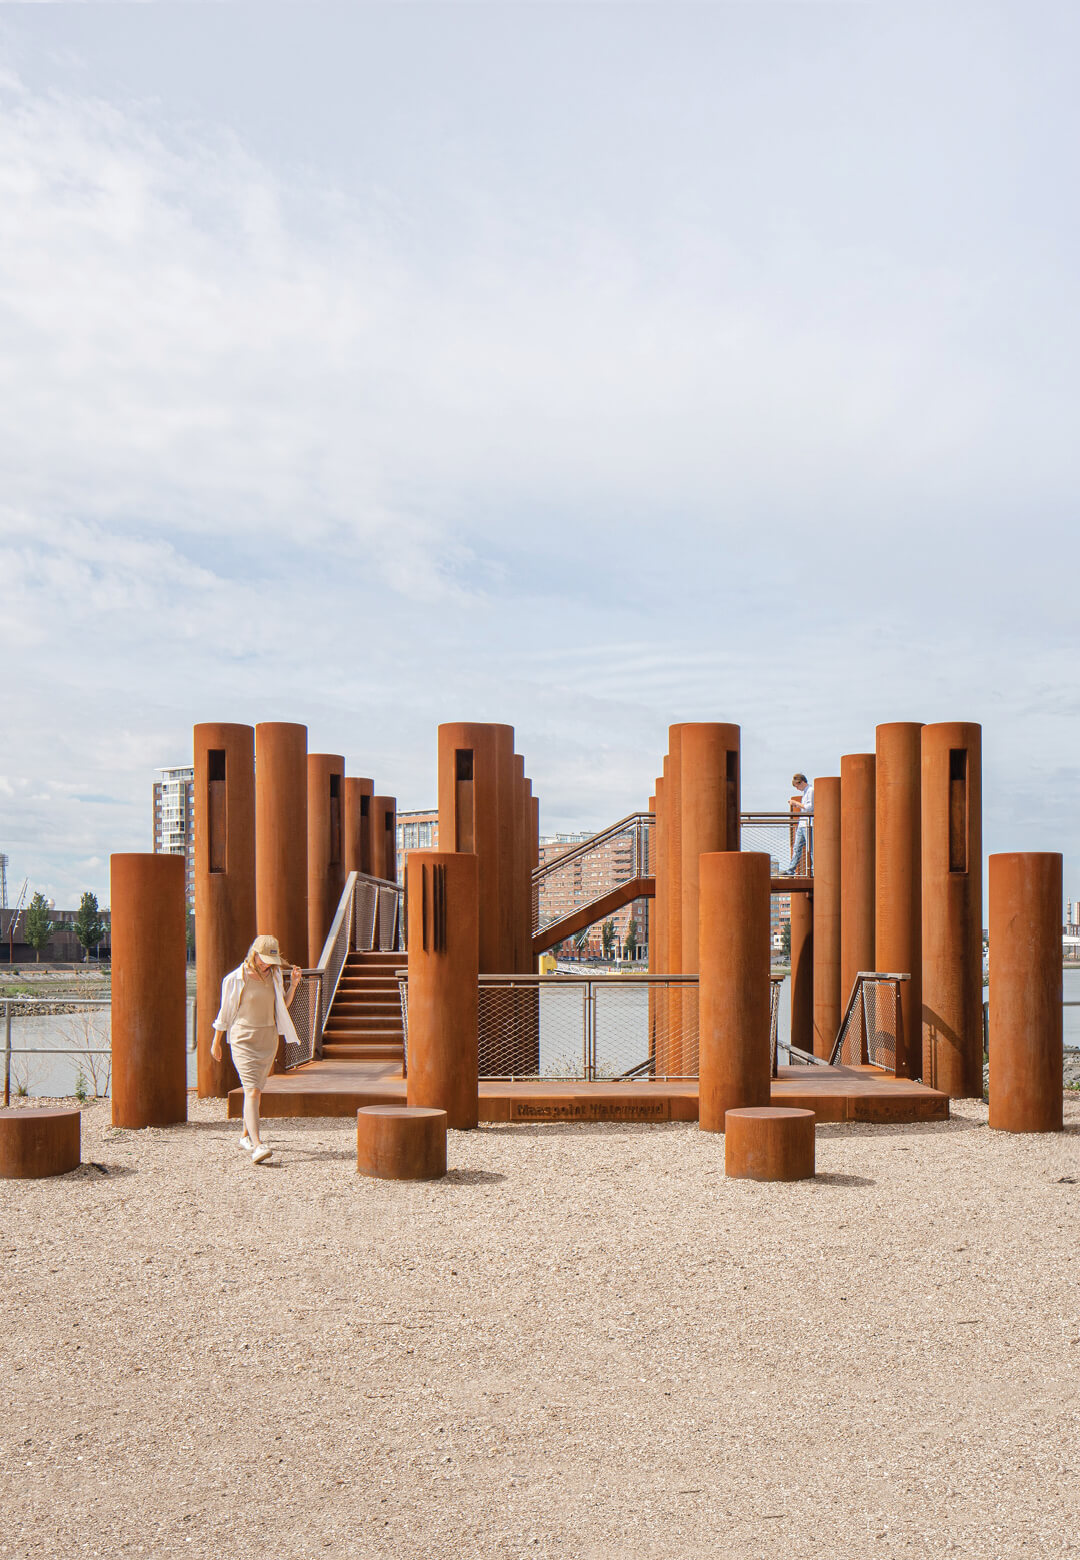 Maaspoints: Water Woods designed by Next Architects in Rotterdam  | Water Woods Maaspoints | Next Architects | STIRworld